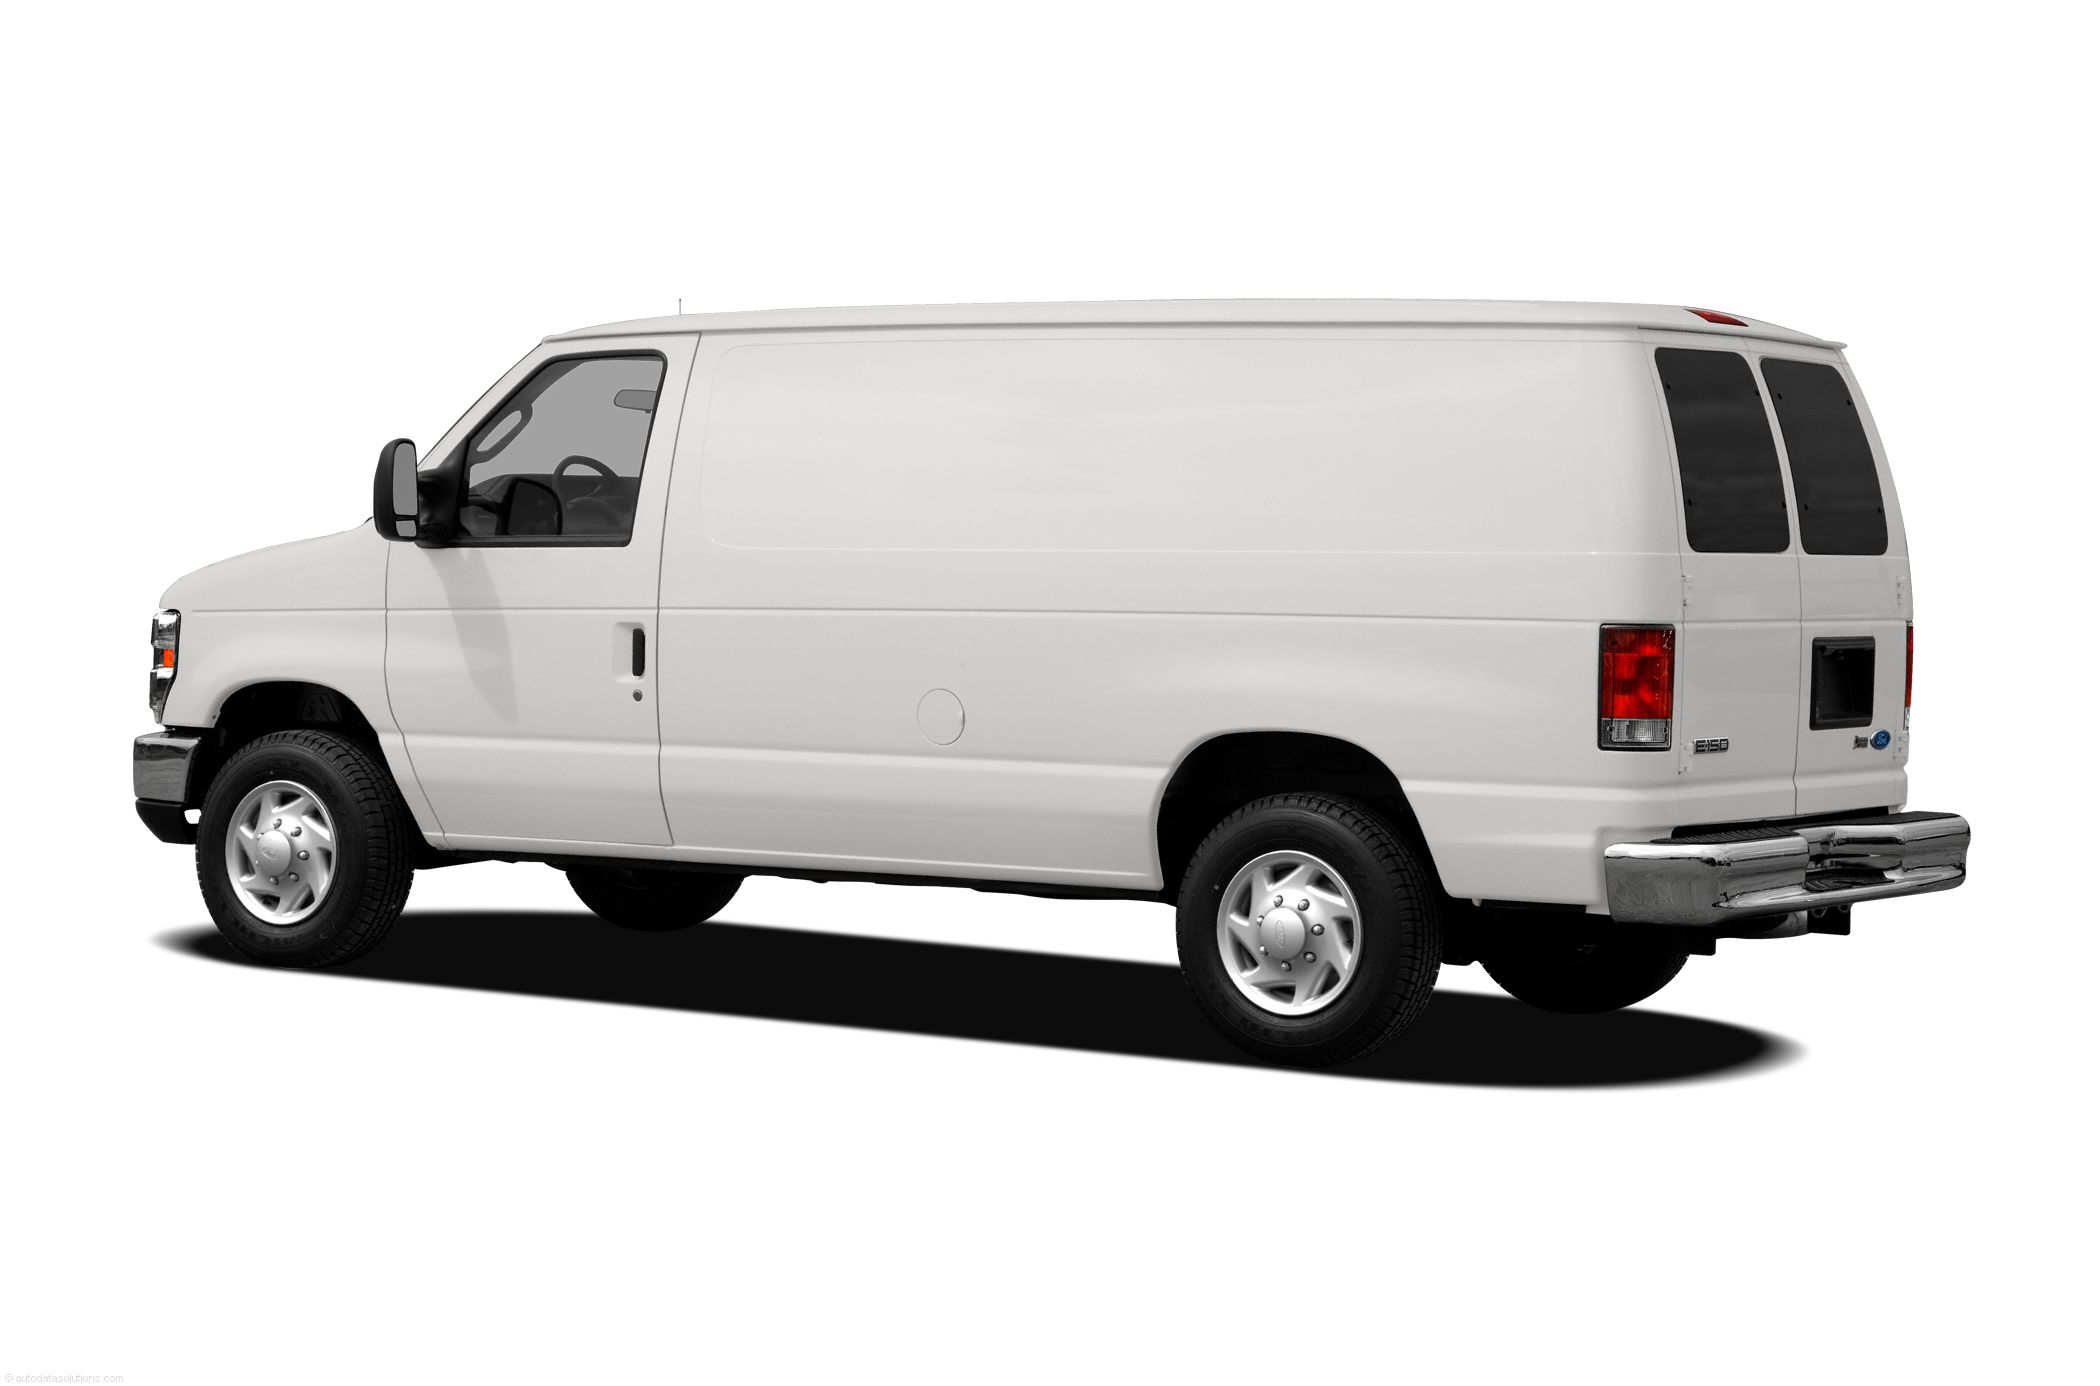 Ford E-350 Super Duty Van